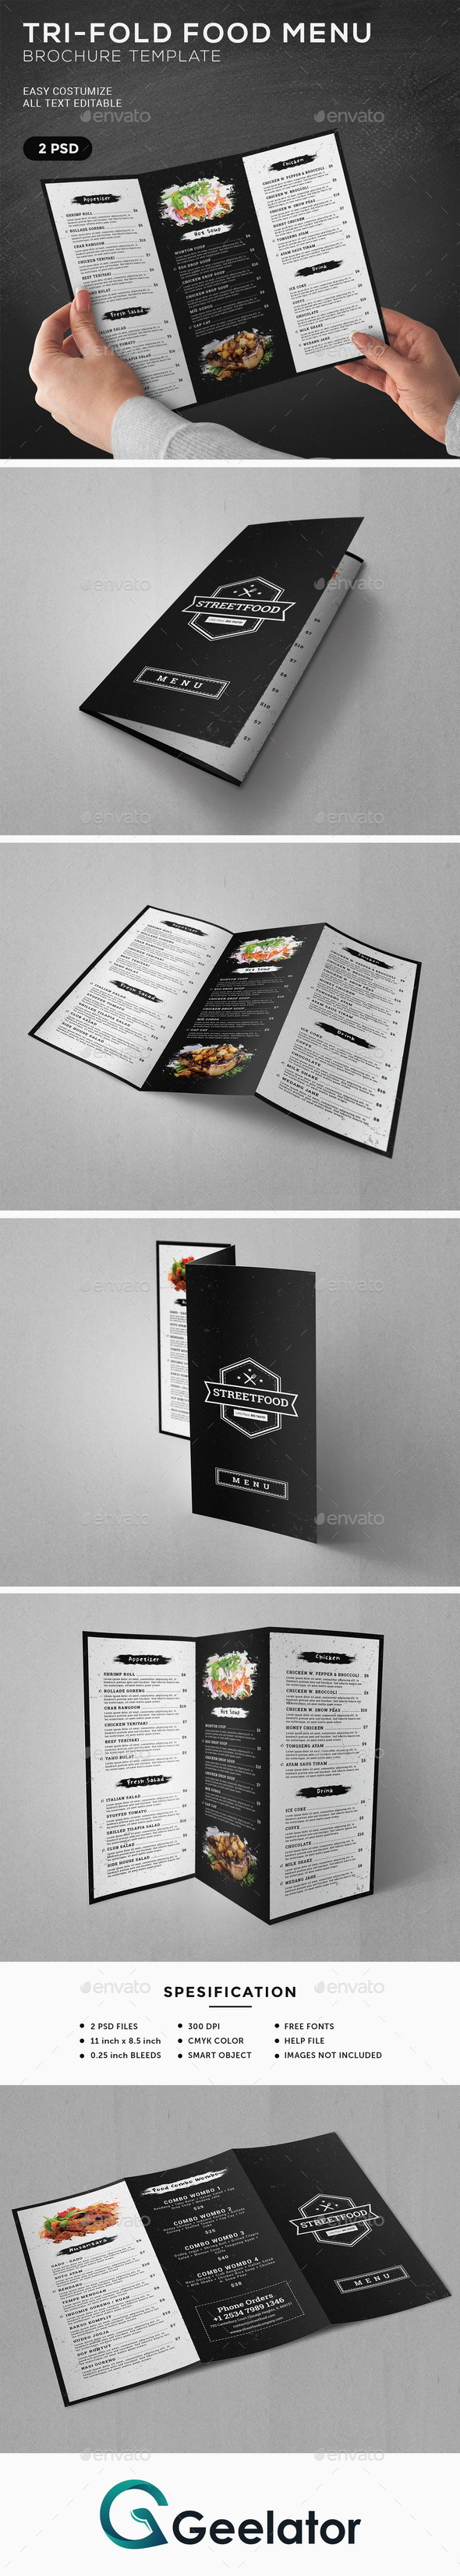 TriFold Food Menu Brochure Template - Food Menus Print Templates